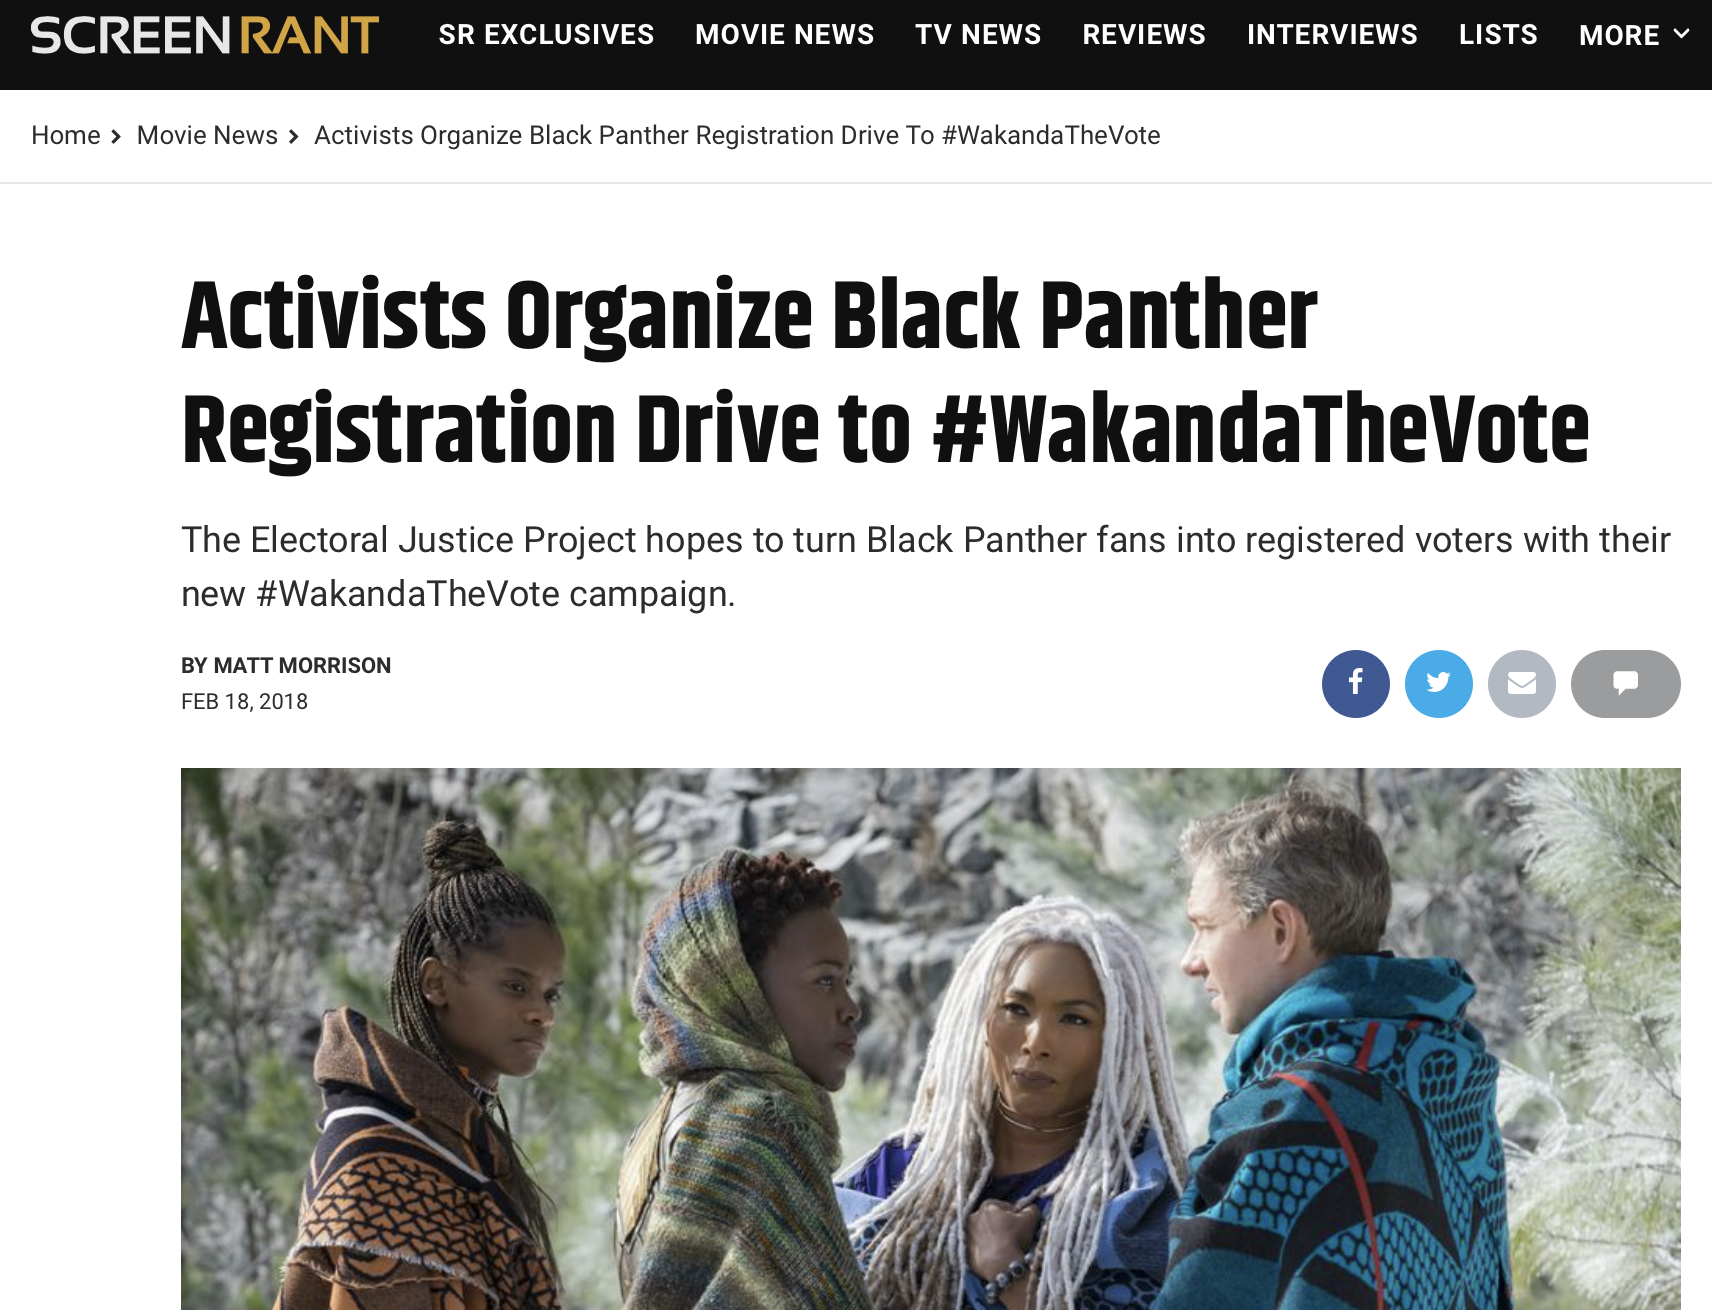 Activists Organize Black Panther Registration Drive to #WakandaTheVote